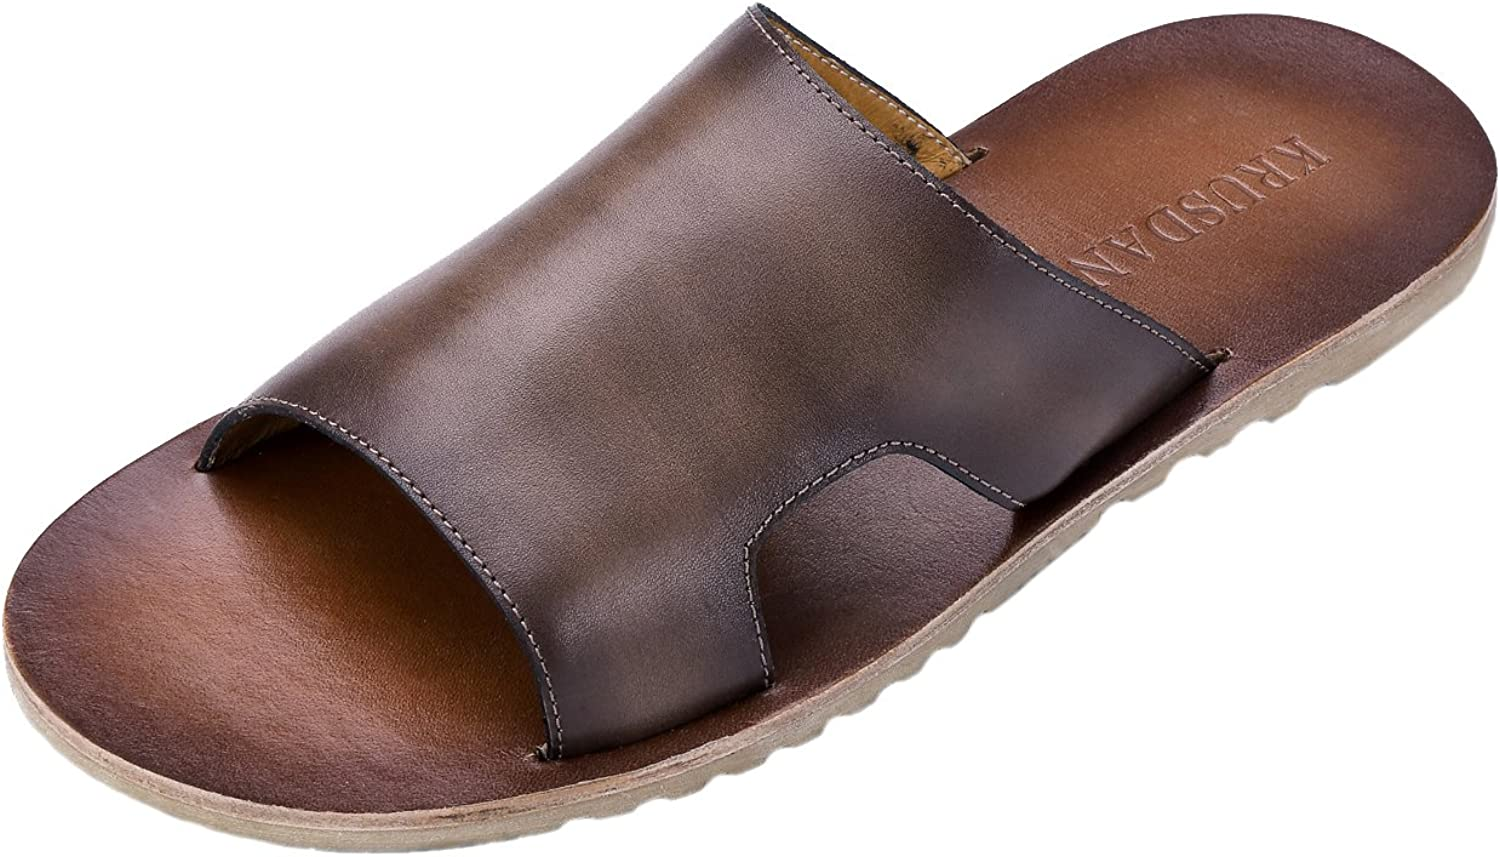 Tortor 1bacha Men's Leather Open Toe Cut-Out Upper Slippers